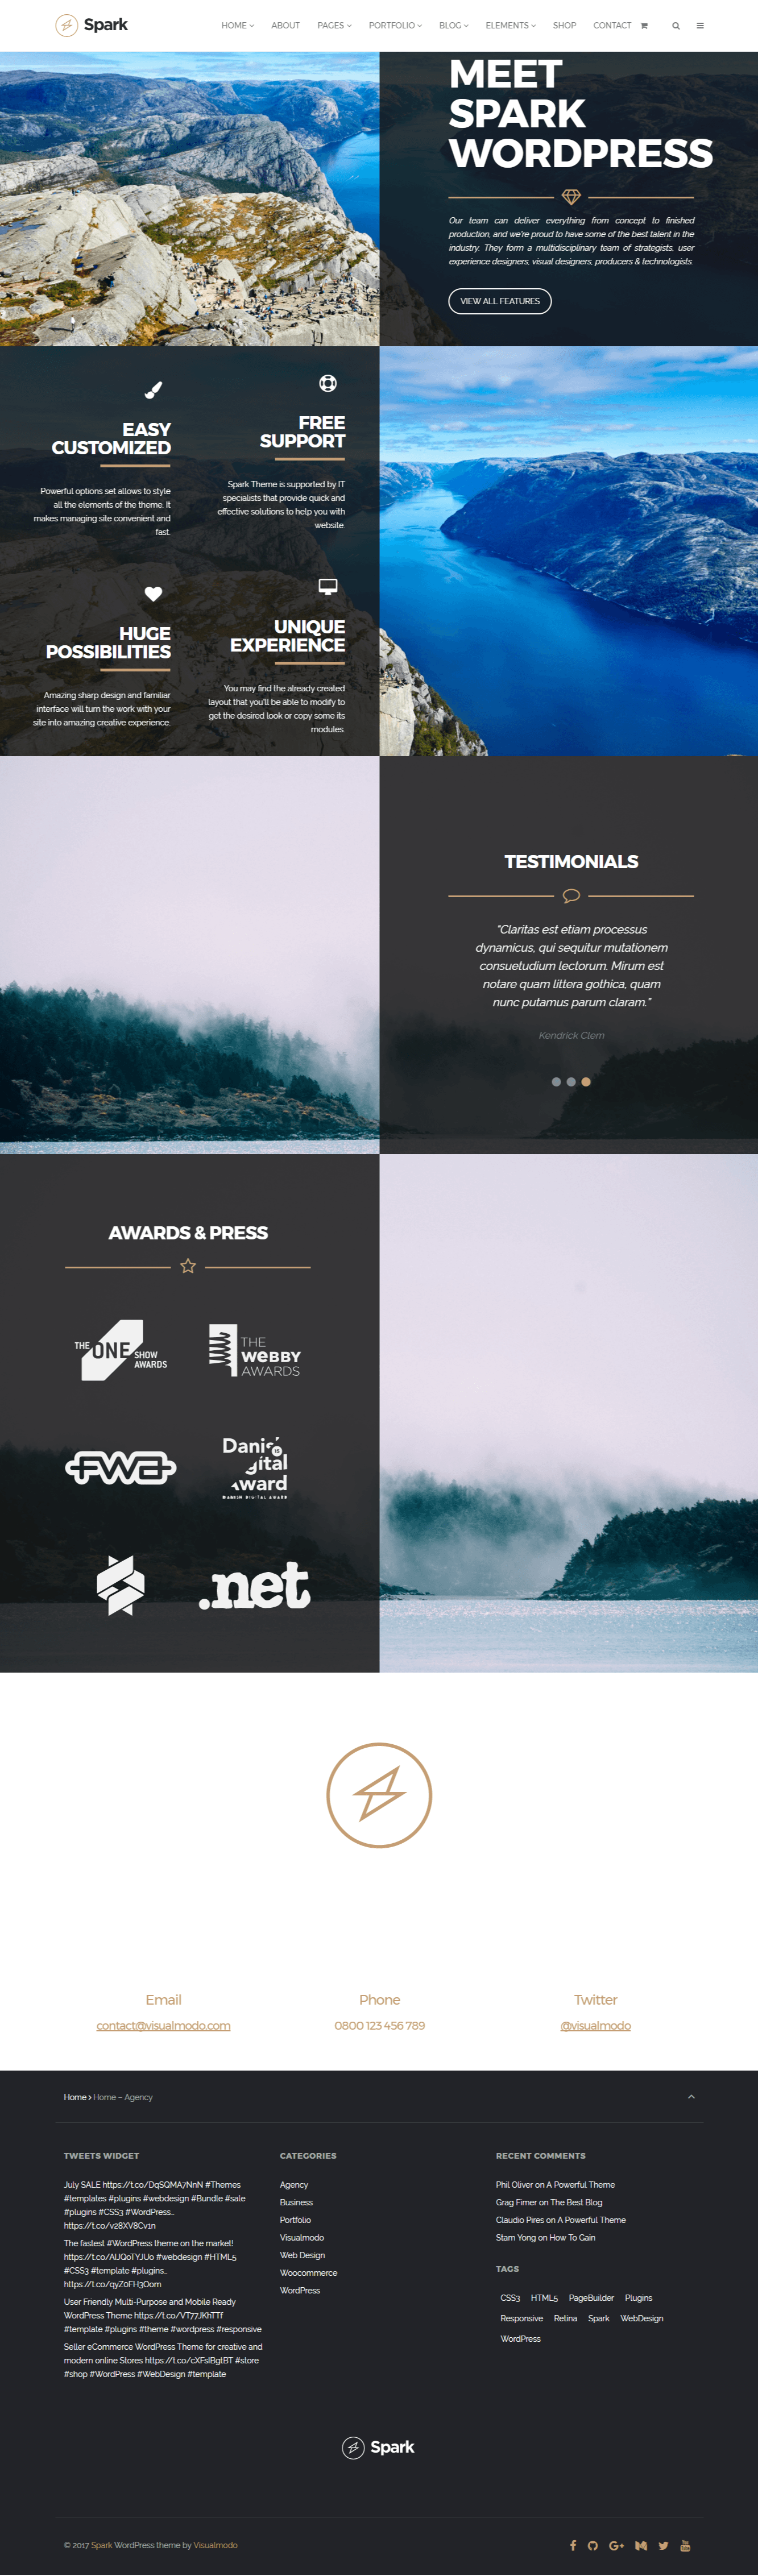 Spark WordPress theme screenshots print screens